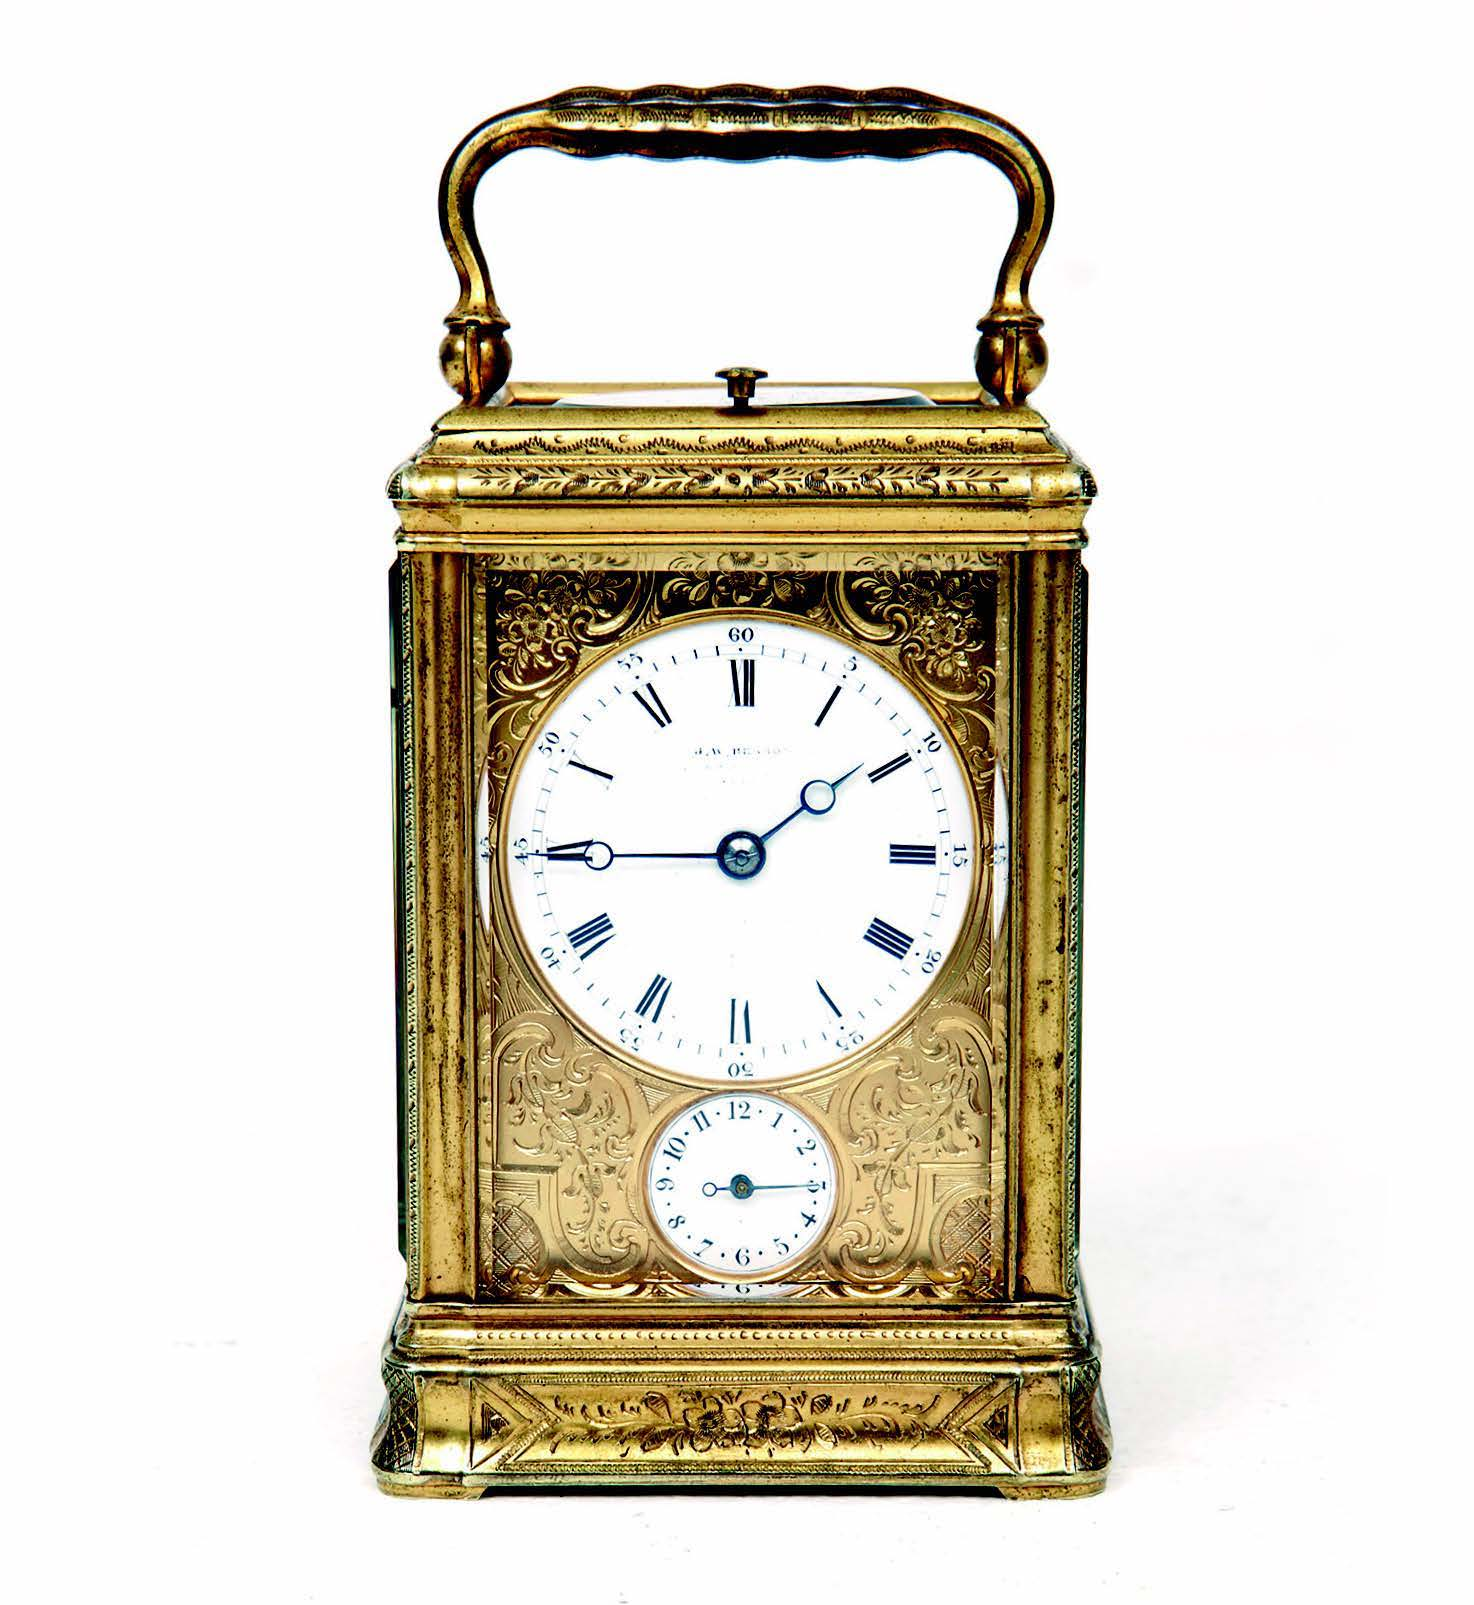 19th-century French gorge cased repeating carriage clock